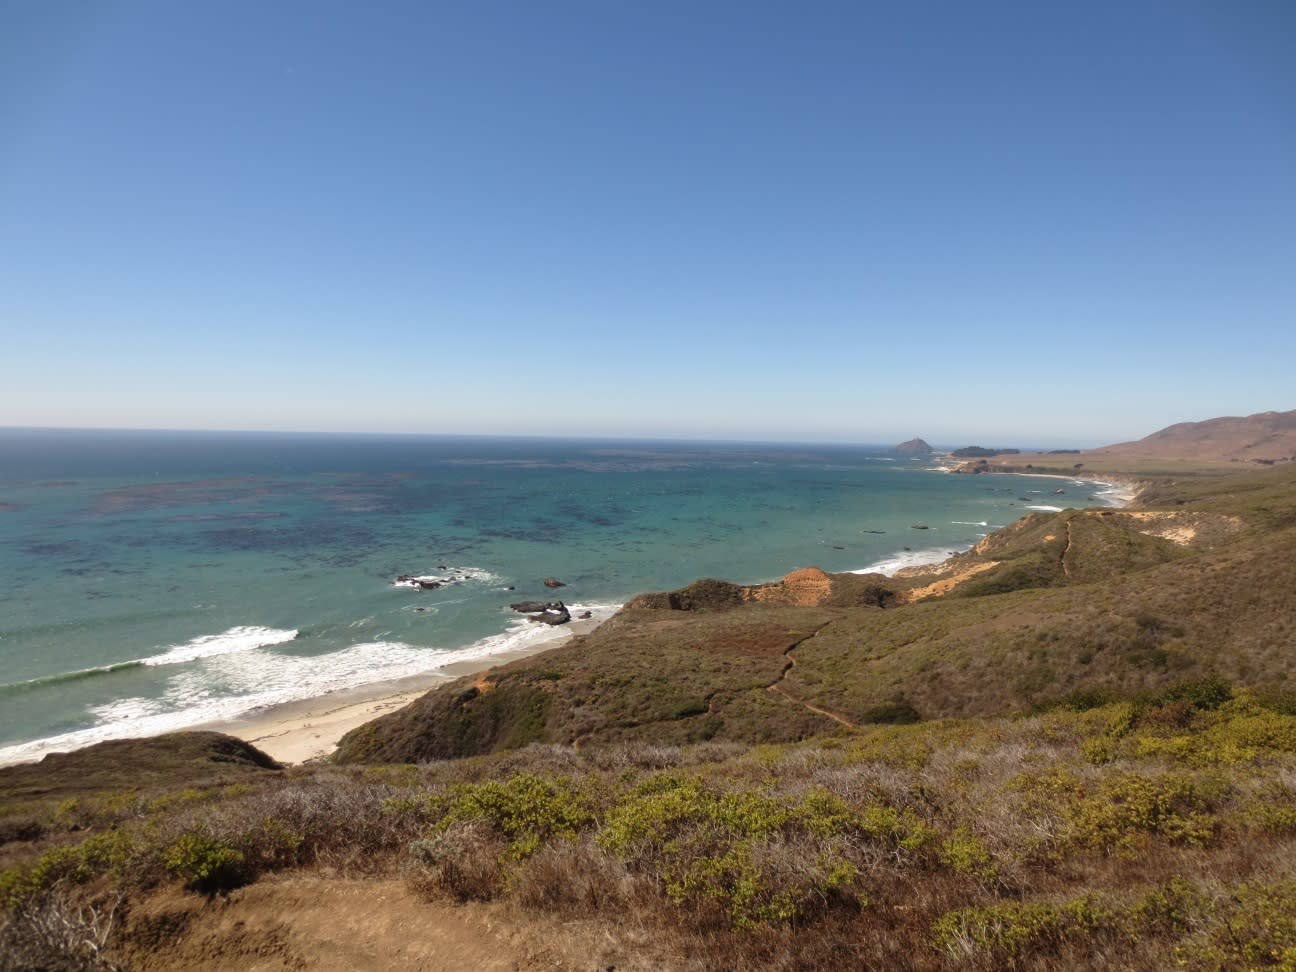 The view from Andrew Molera State park, one of the many beautiful beach stops that can be made along the Pacific Coast Highway in Big Sur.